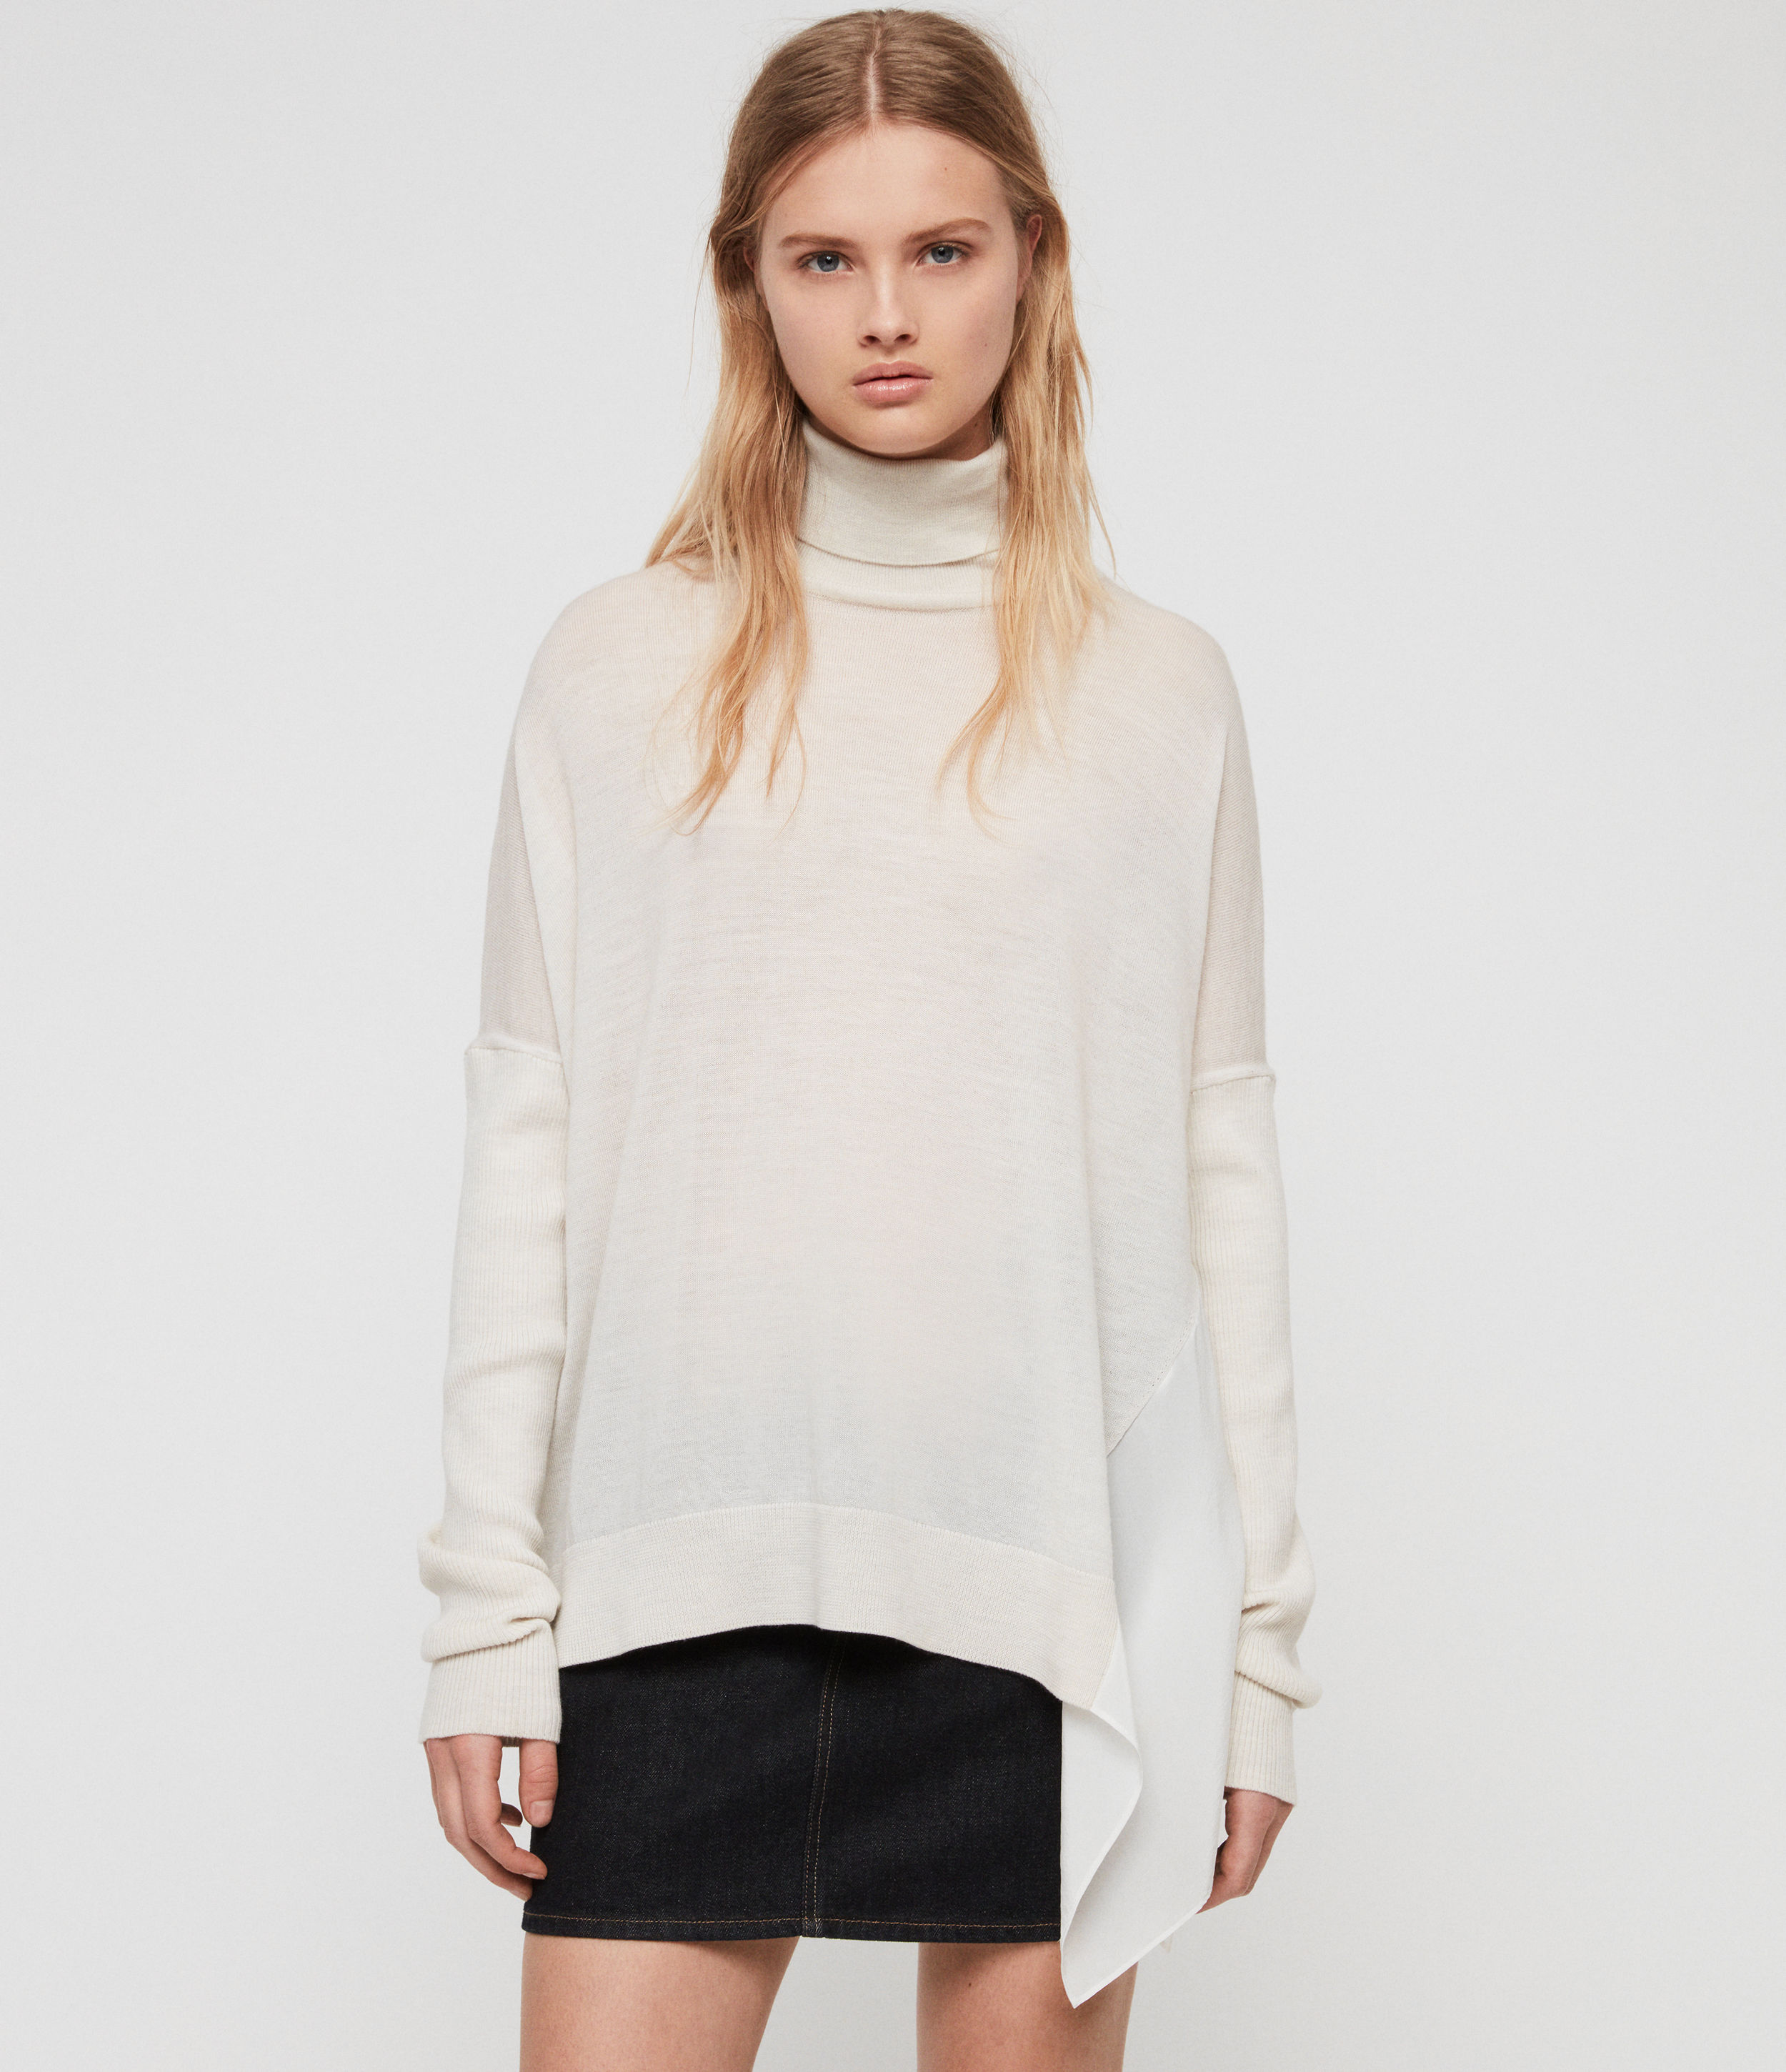 Shop Allsaints Sweater for Women - Obsessory 0188f6c36